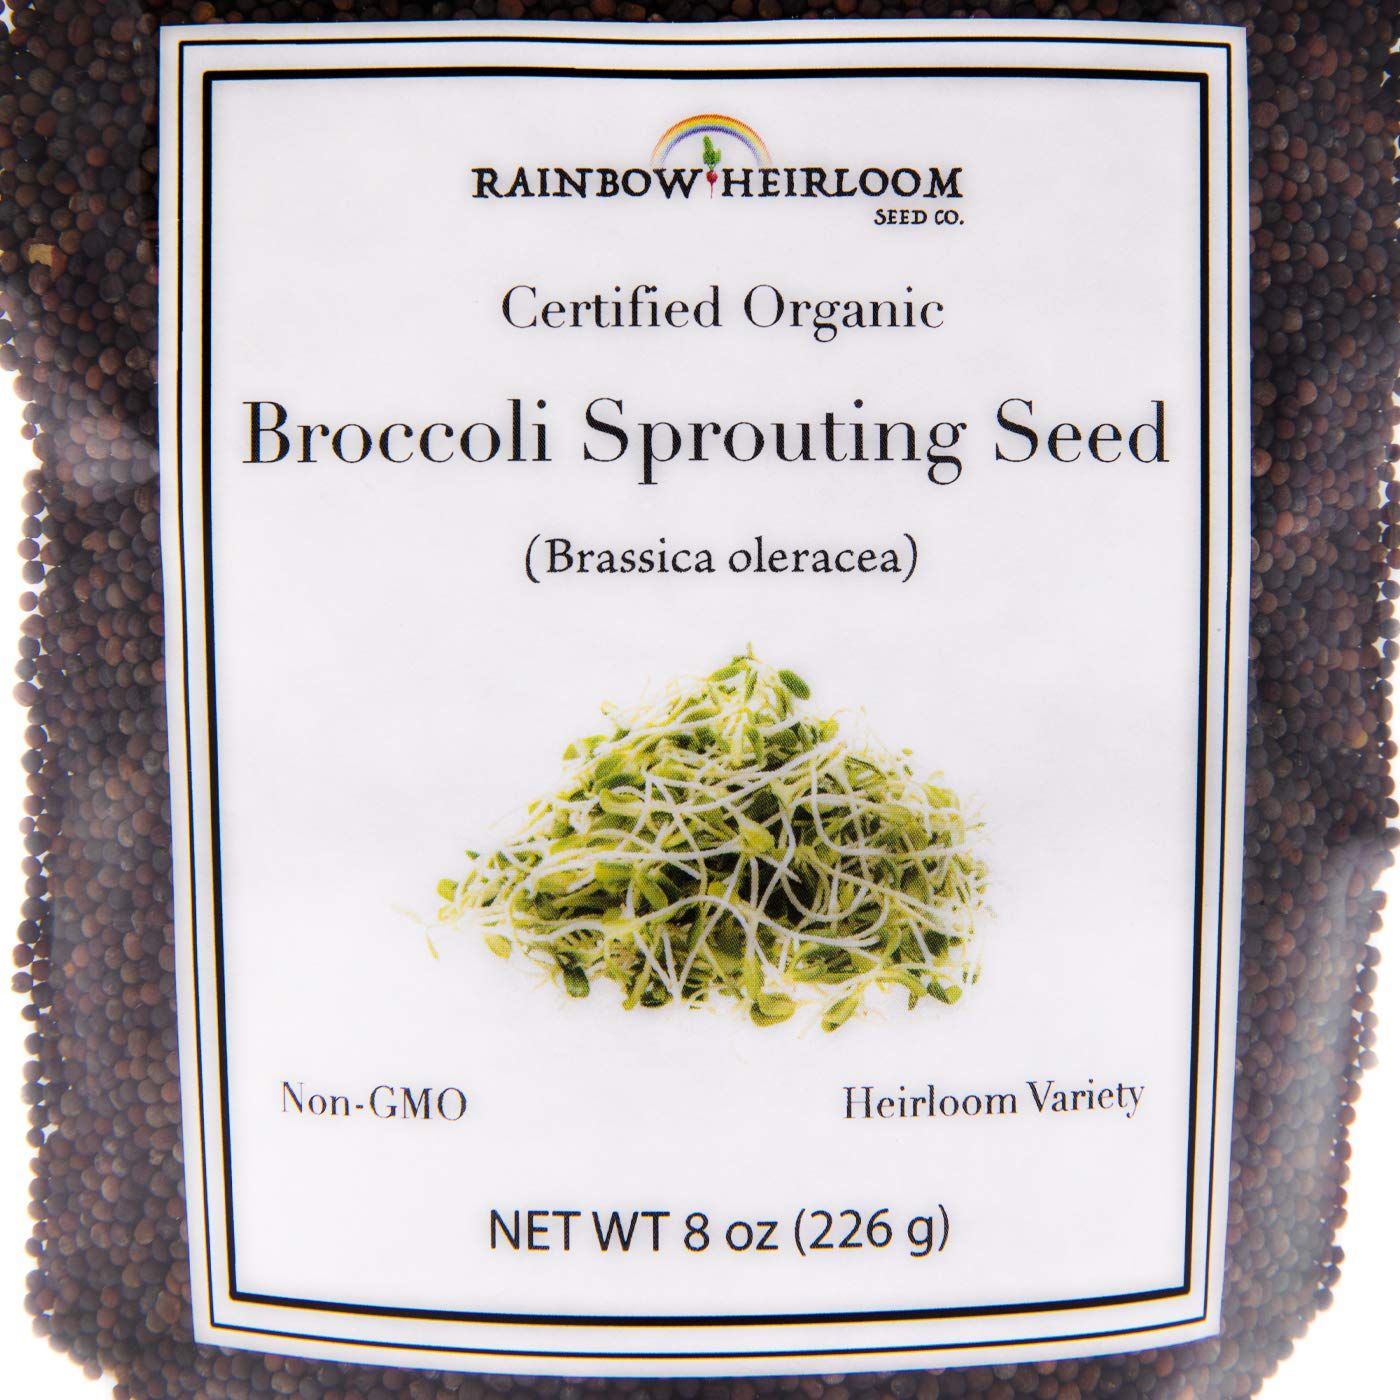 Certified Organic Broccoli Sprouting Seeds for Broccoli Sprouts & Microgreens | Non GMO Seed Heirloom Variety | 1 LB Resealable Bag | Perfect for Sprouting Jar & Seed Tray | Rainbow Heirloom Seed Co. by Rainbow Heirloom Seed Co. (Image #3)